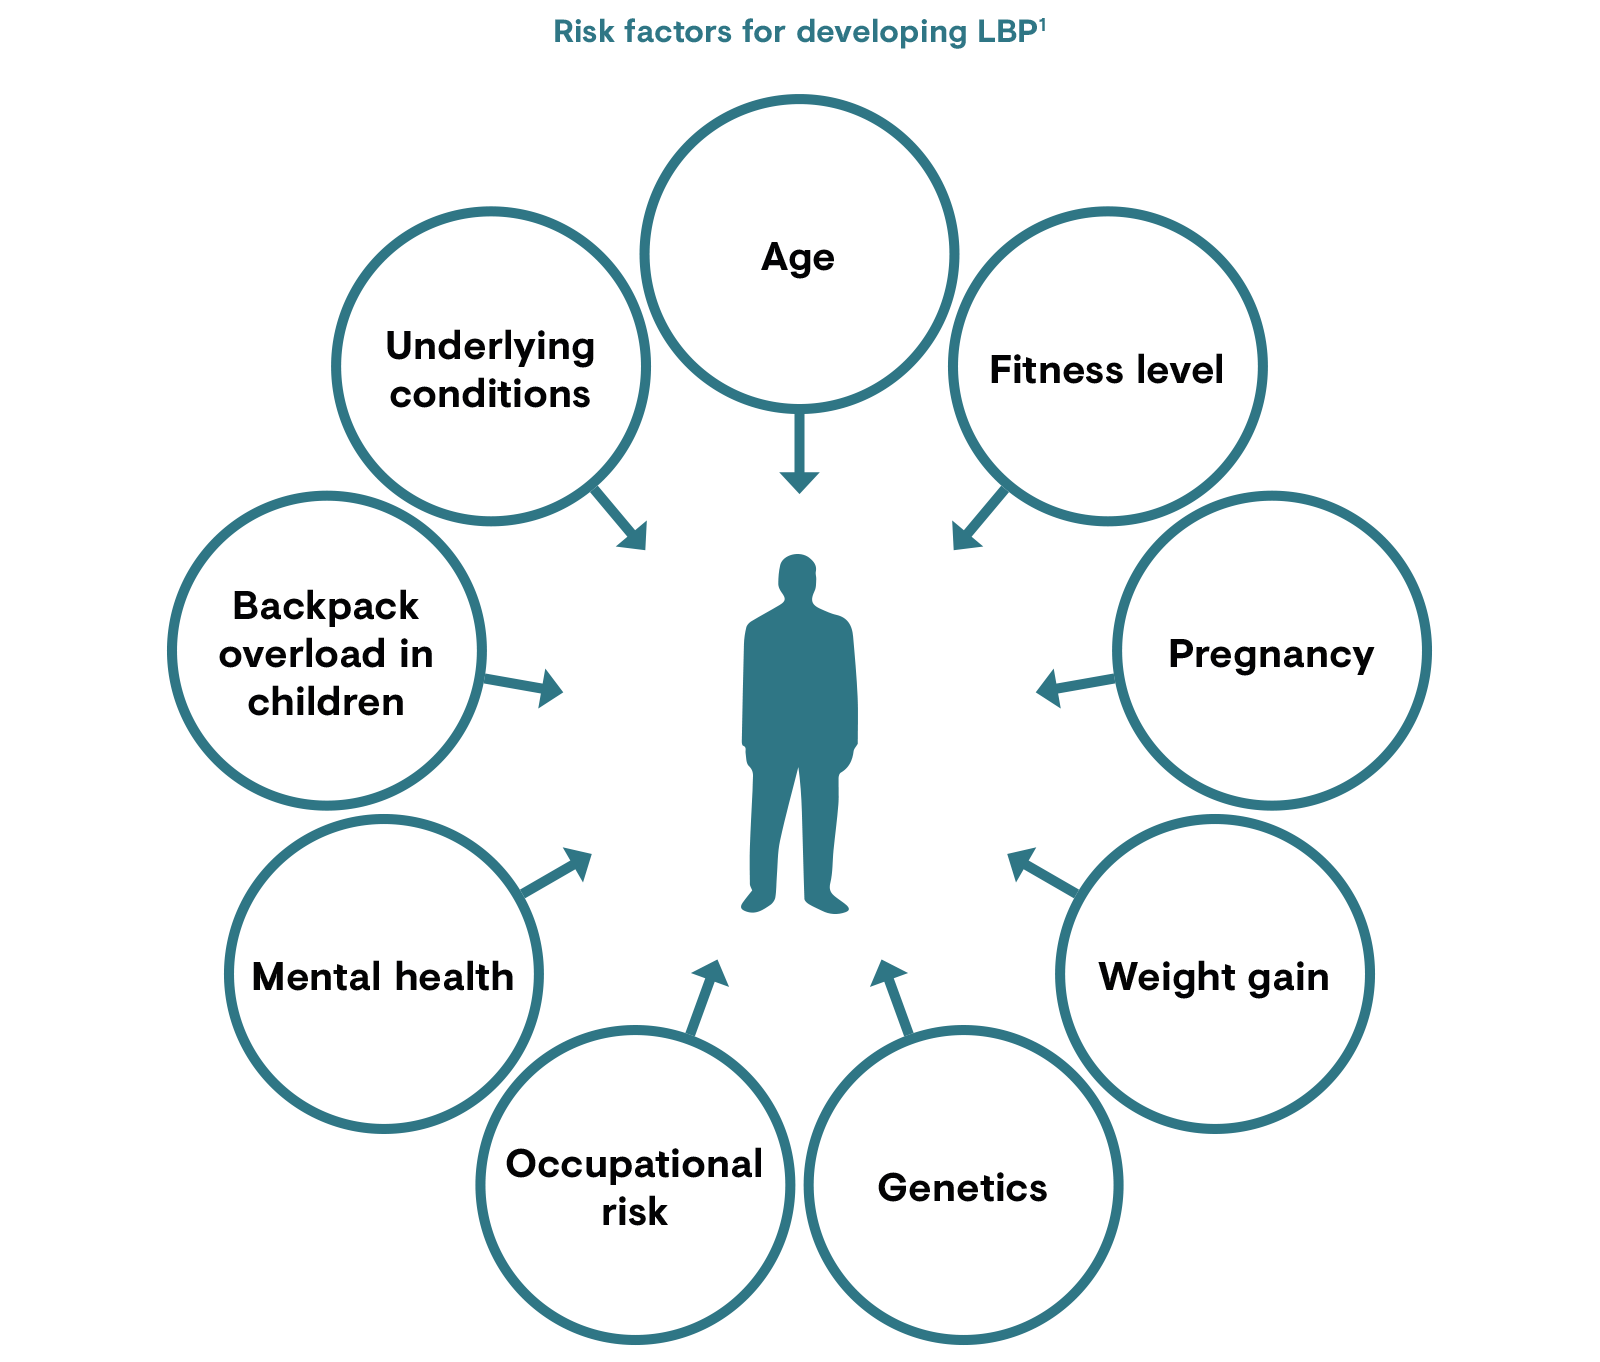 Risk factors for developing LBP